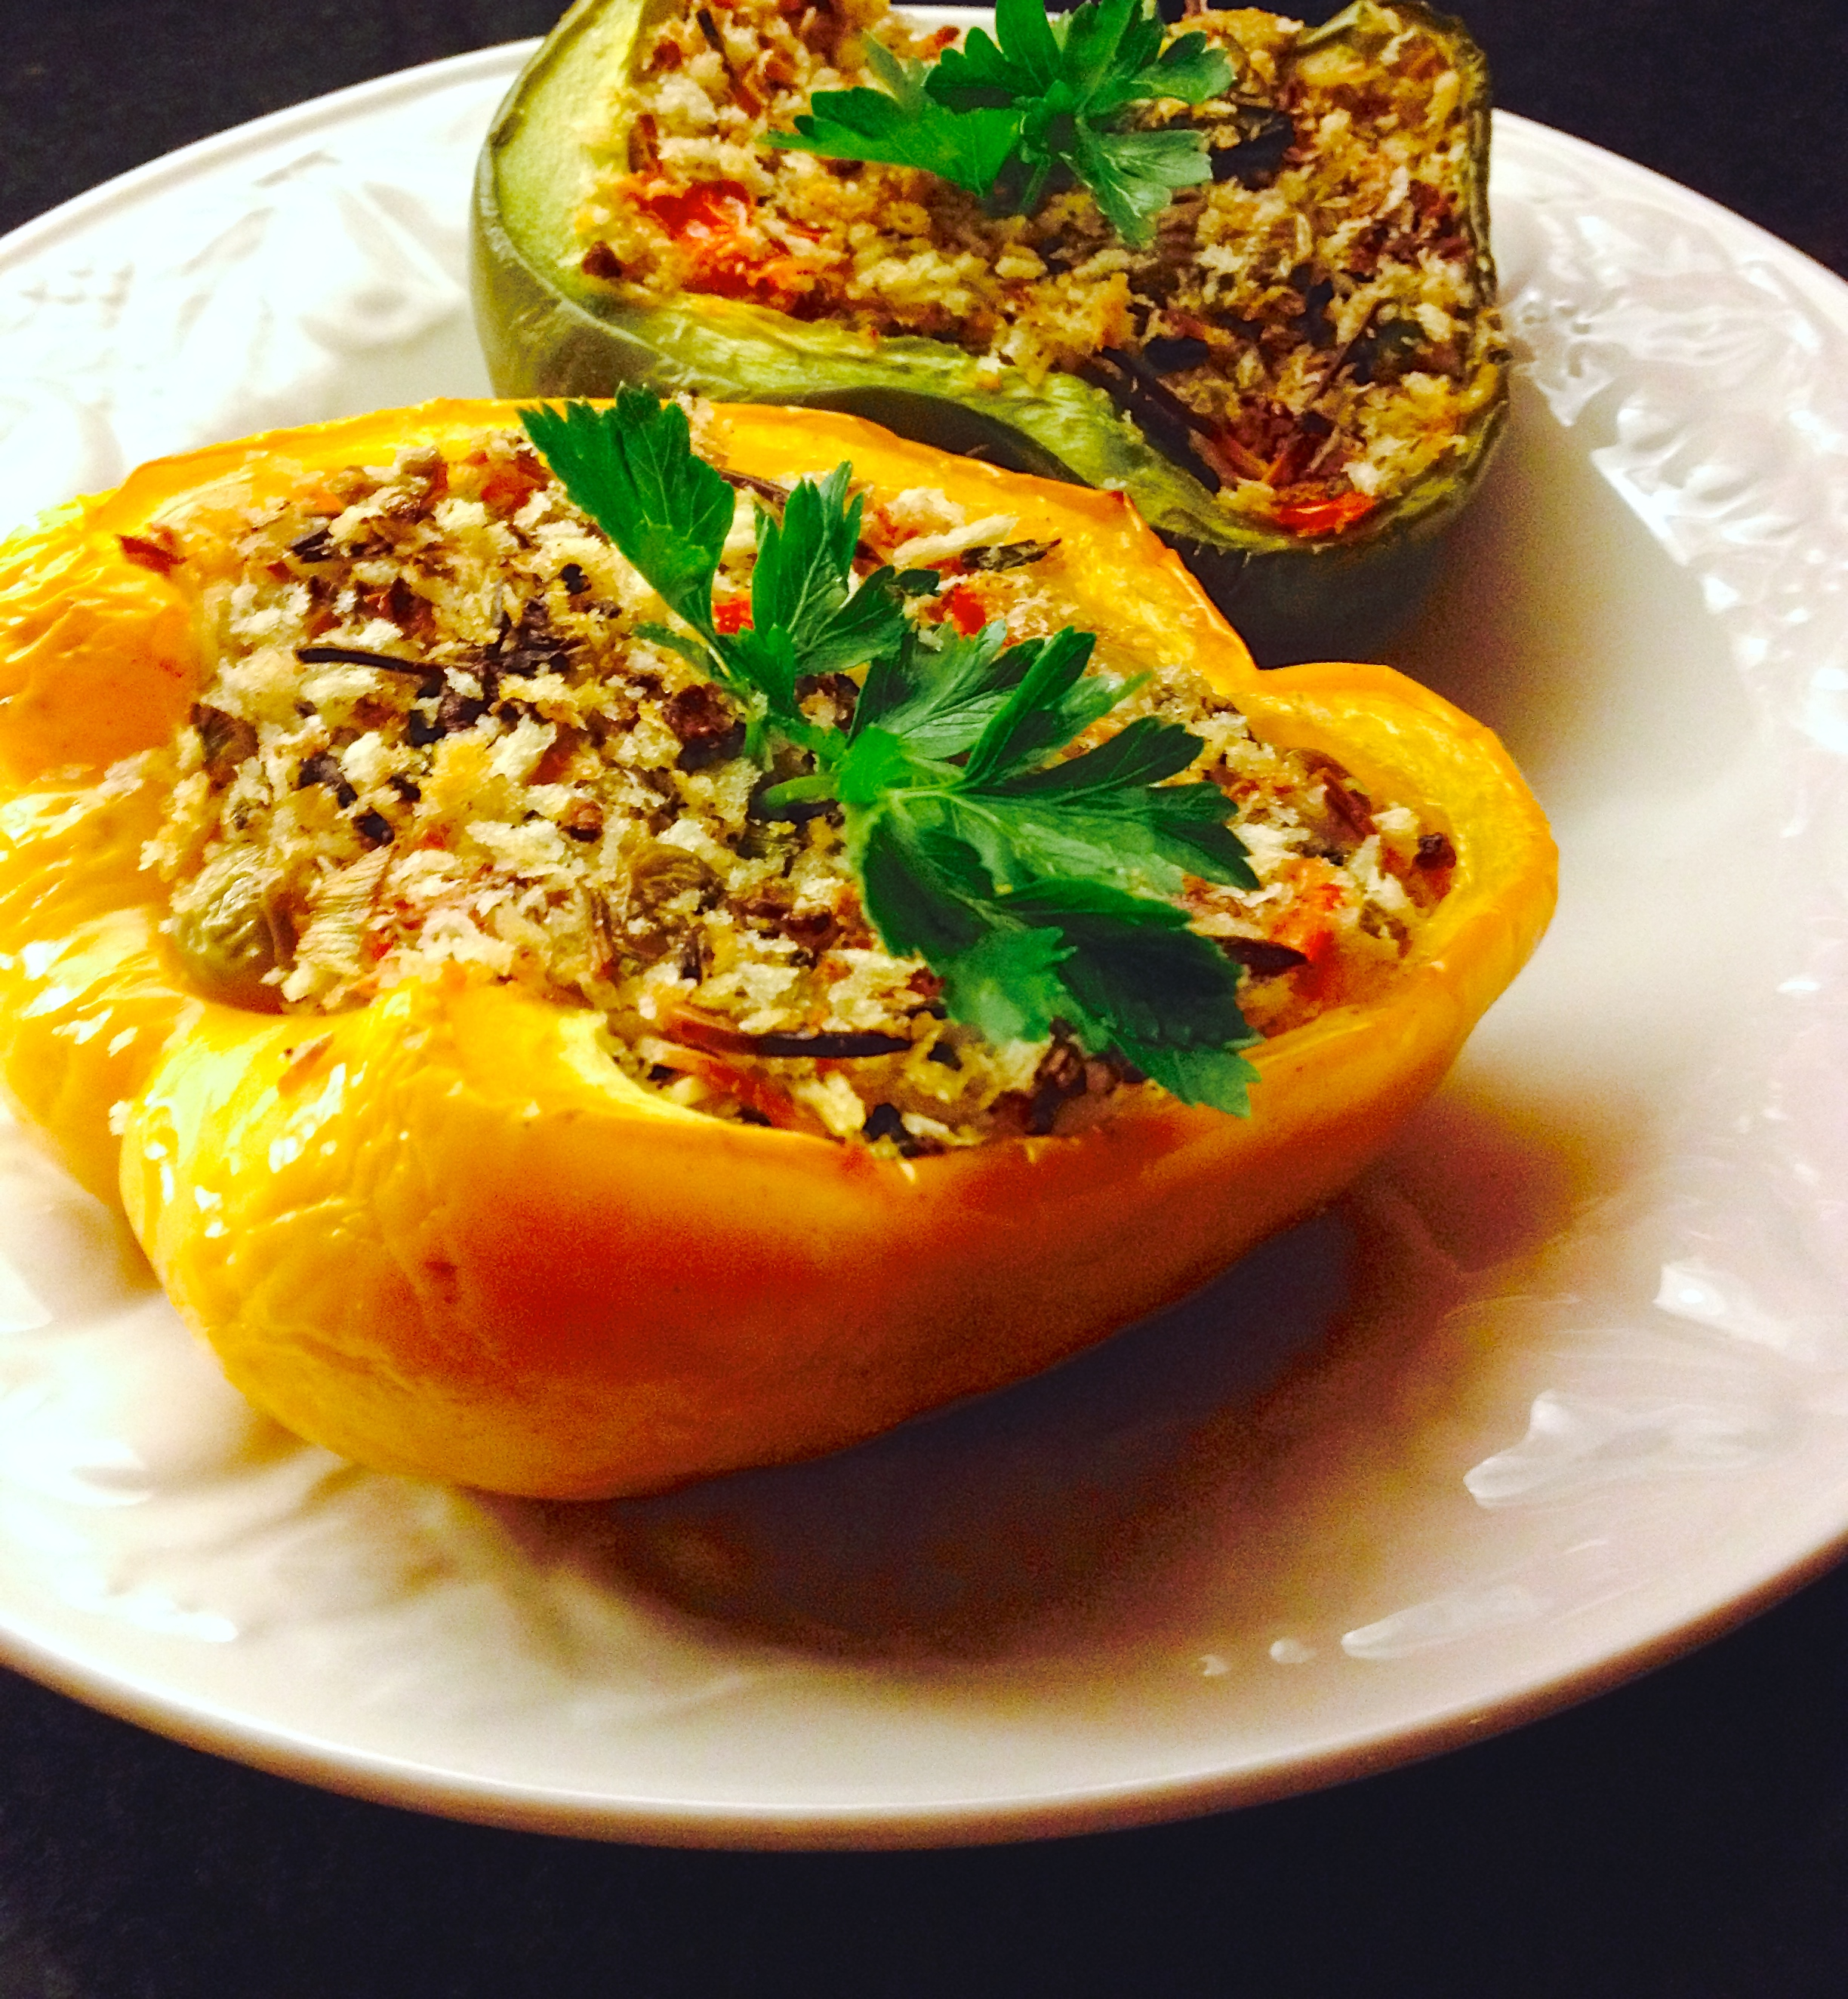 stuffed peppers with parmesan and olives :: by radish*rose